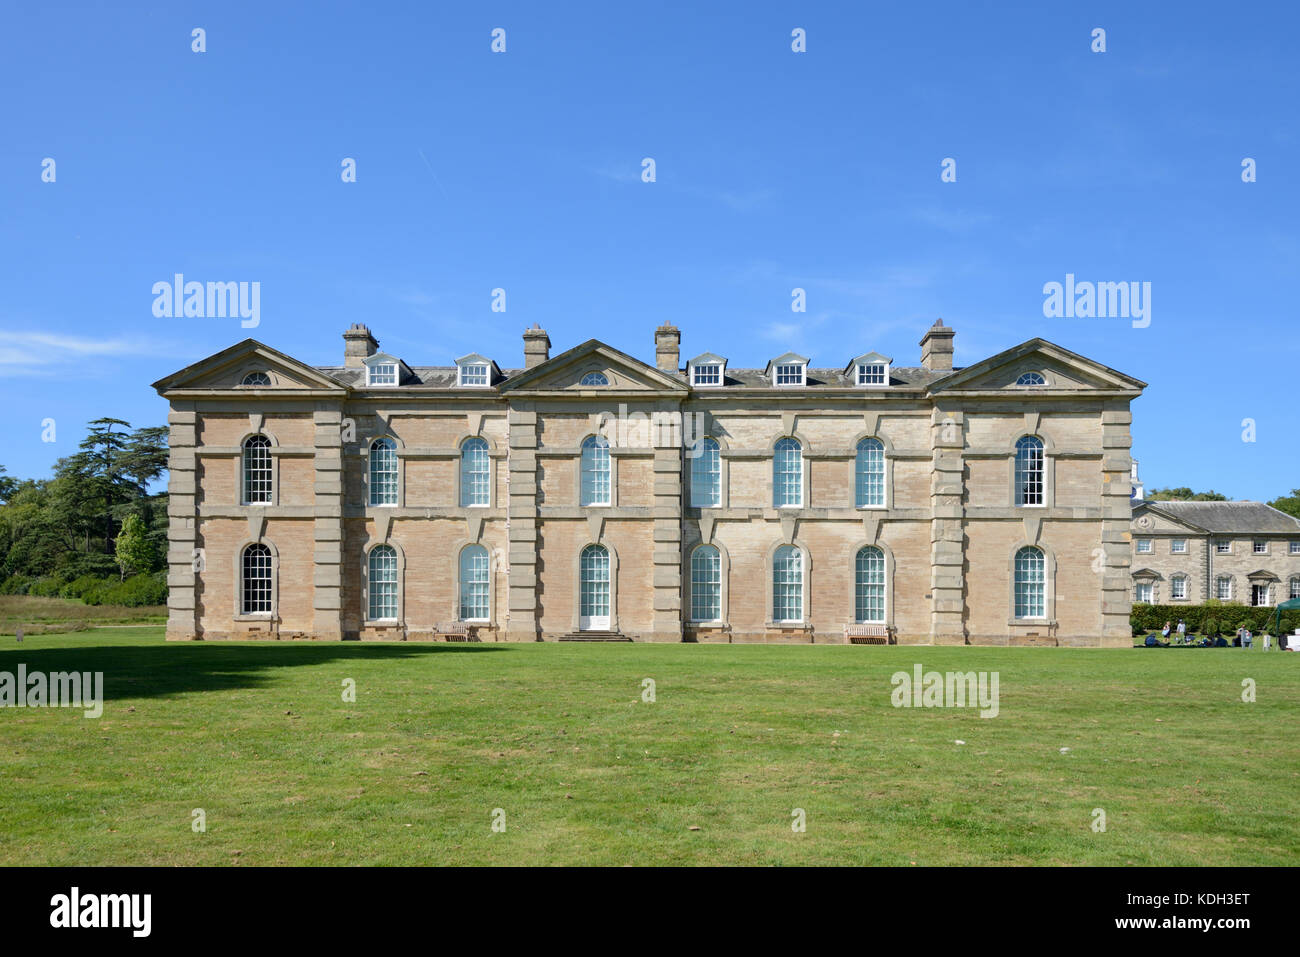 Southern Facade of Compton Verney House (1714), a Country House, at Kineton, Warwickshire, England - Stock Image